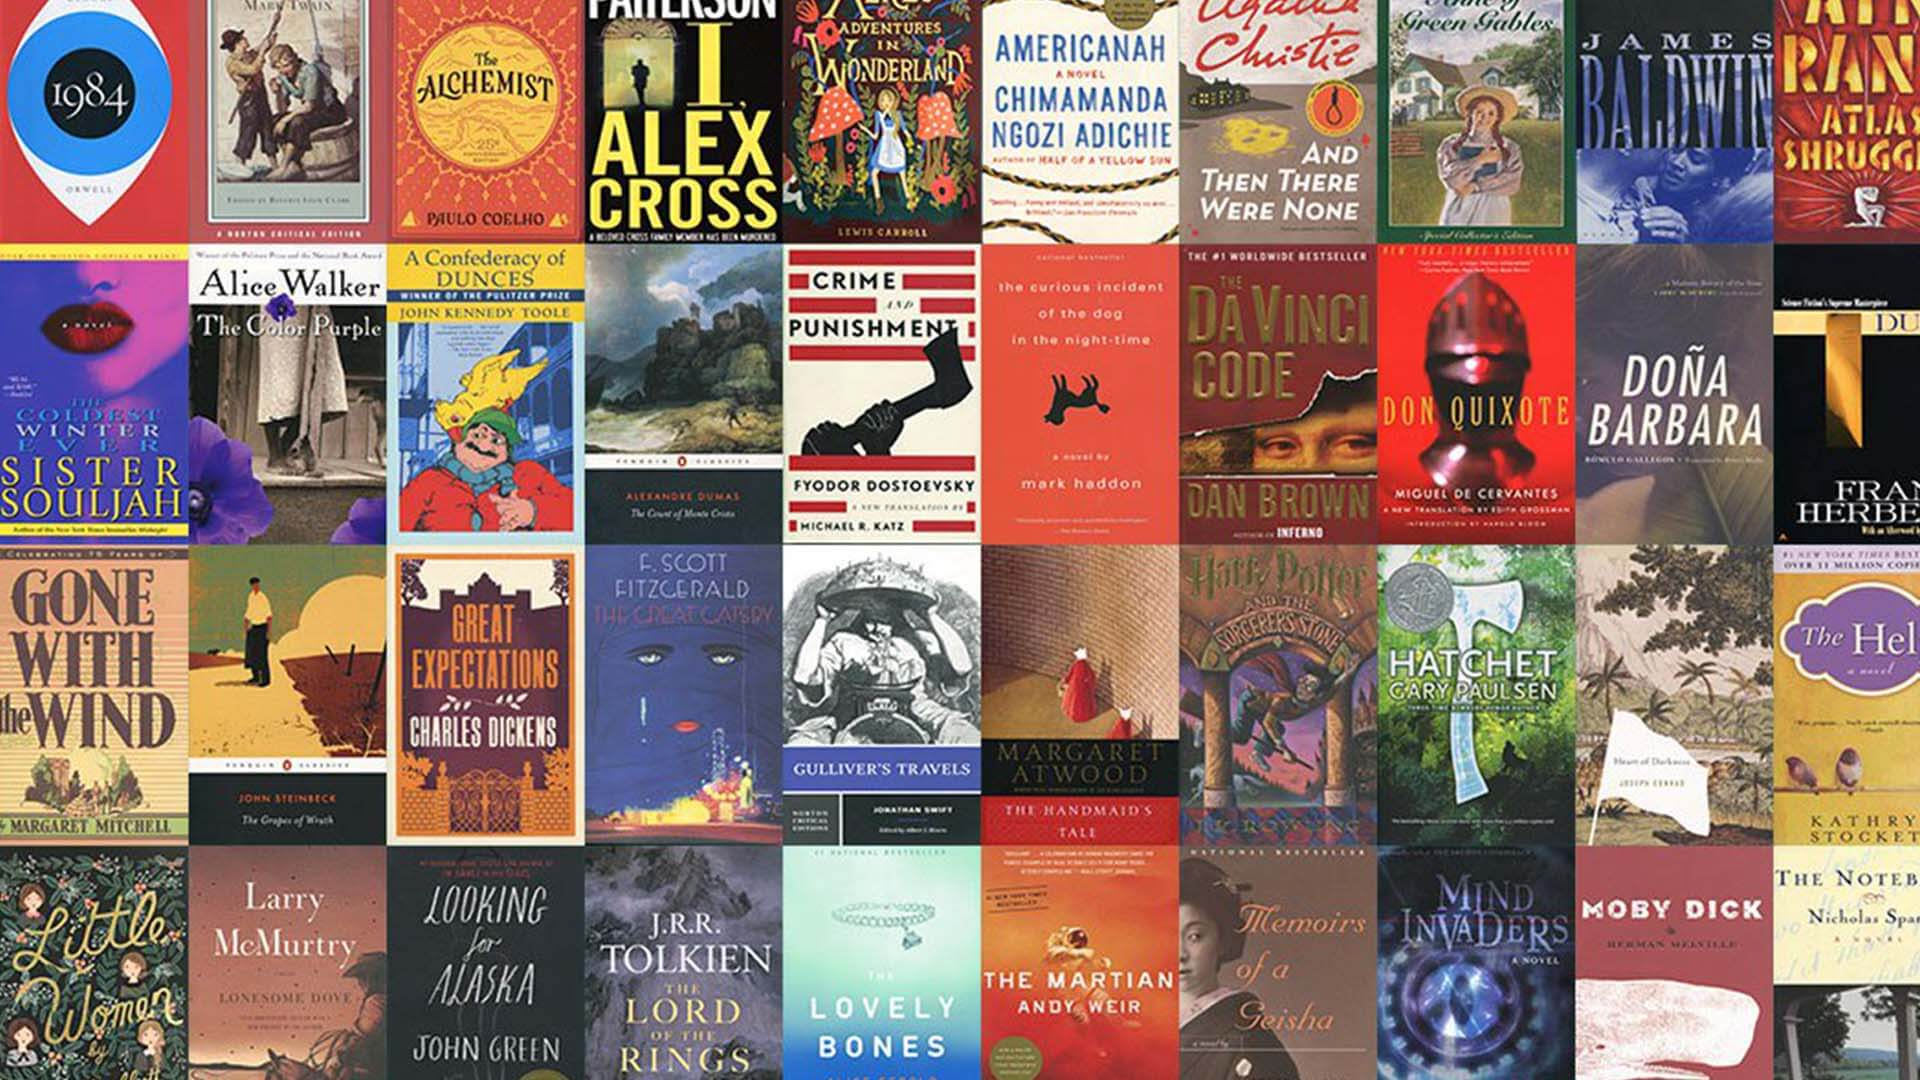 Collage of book covers from books featured in PBS' Great American Read 2018.